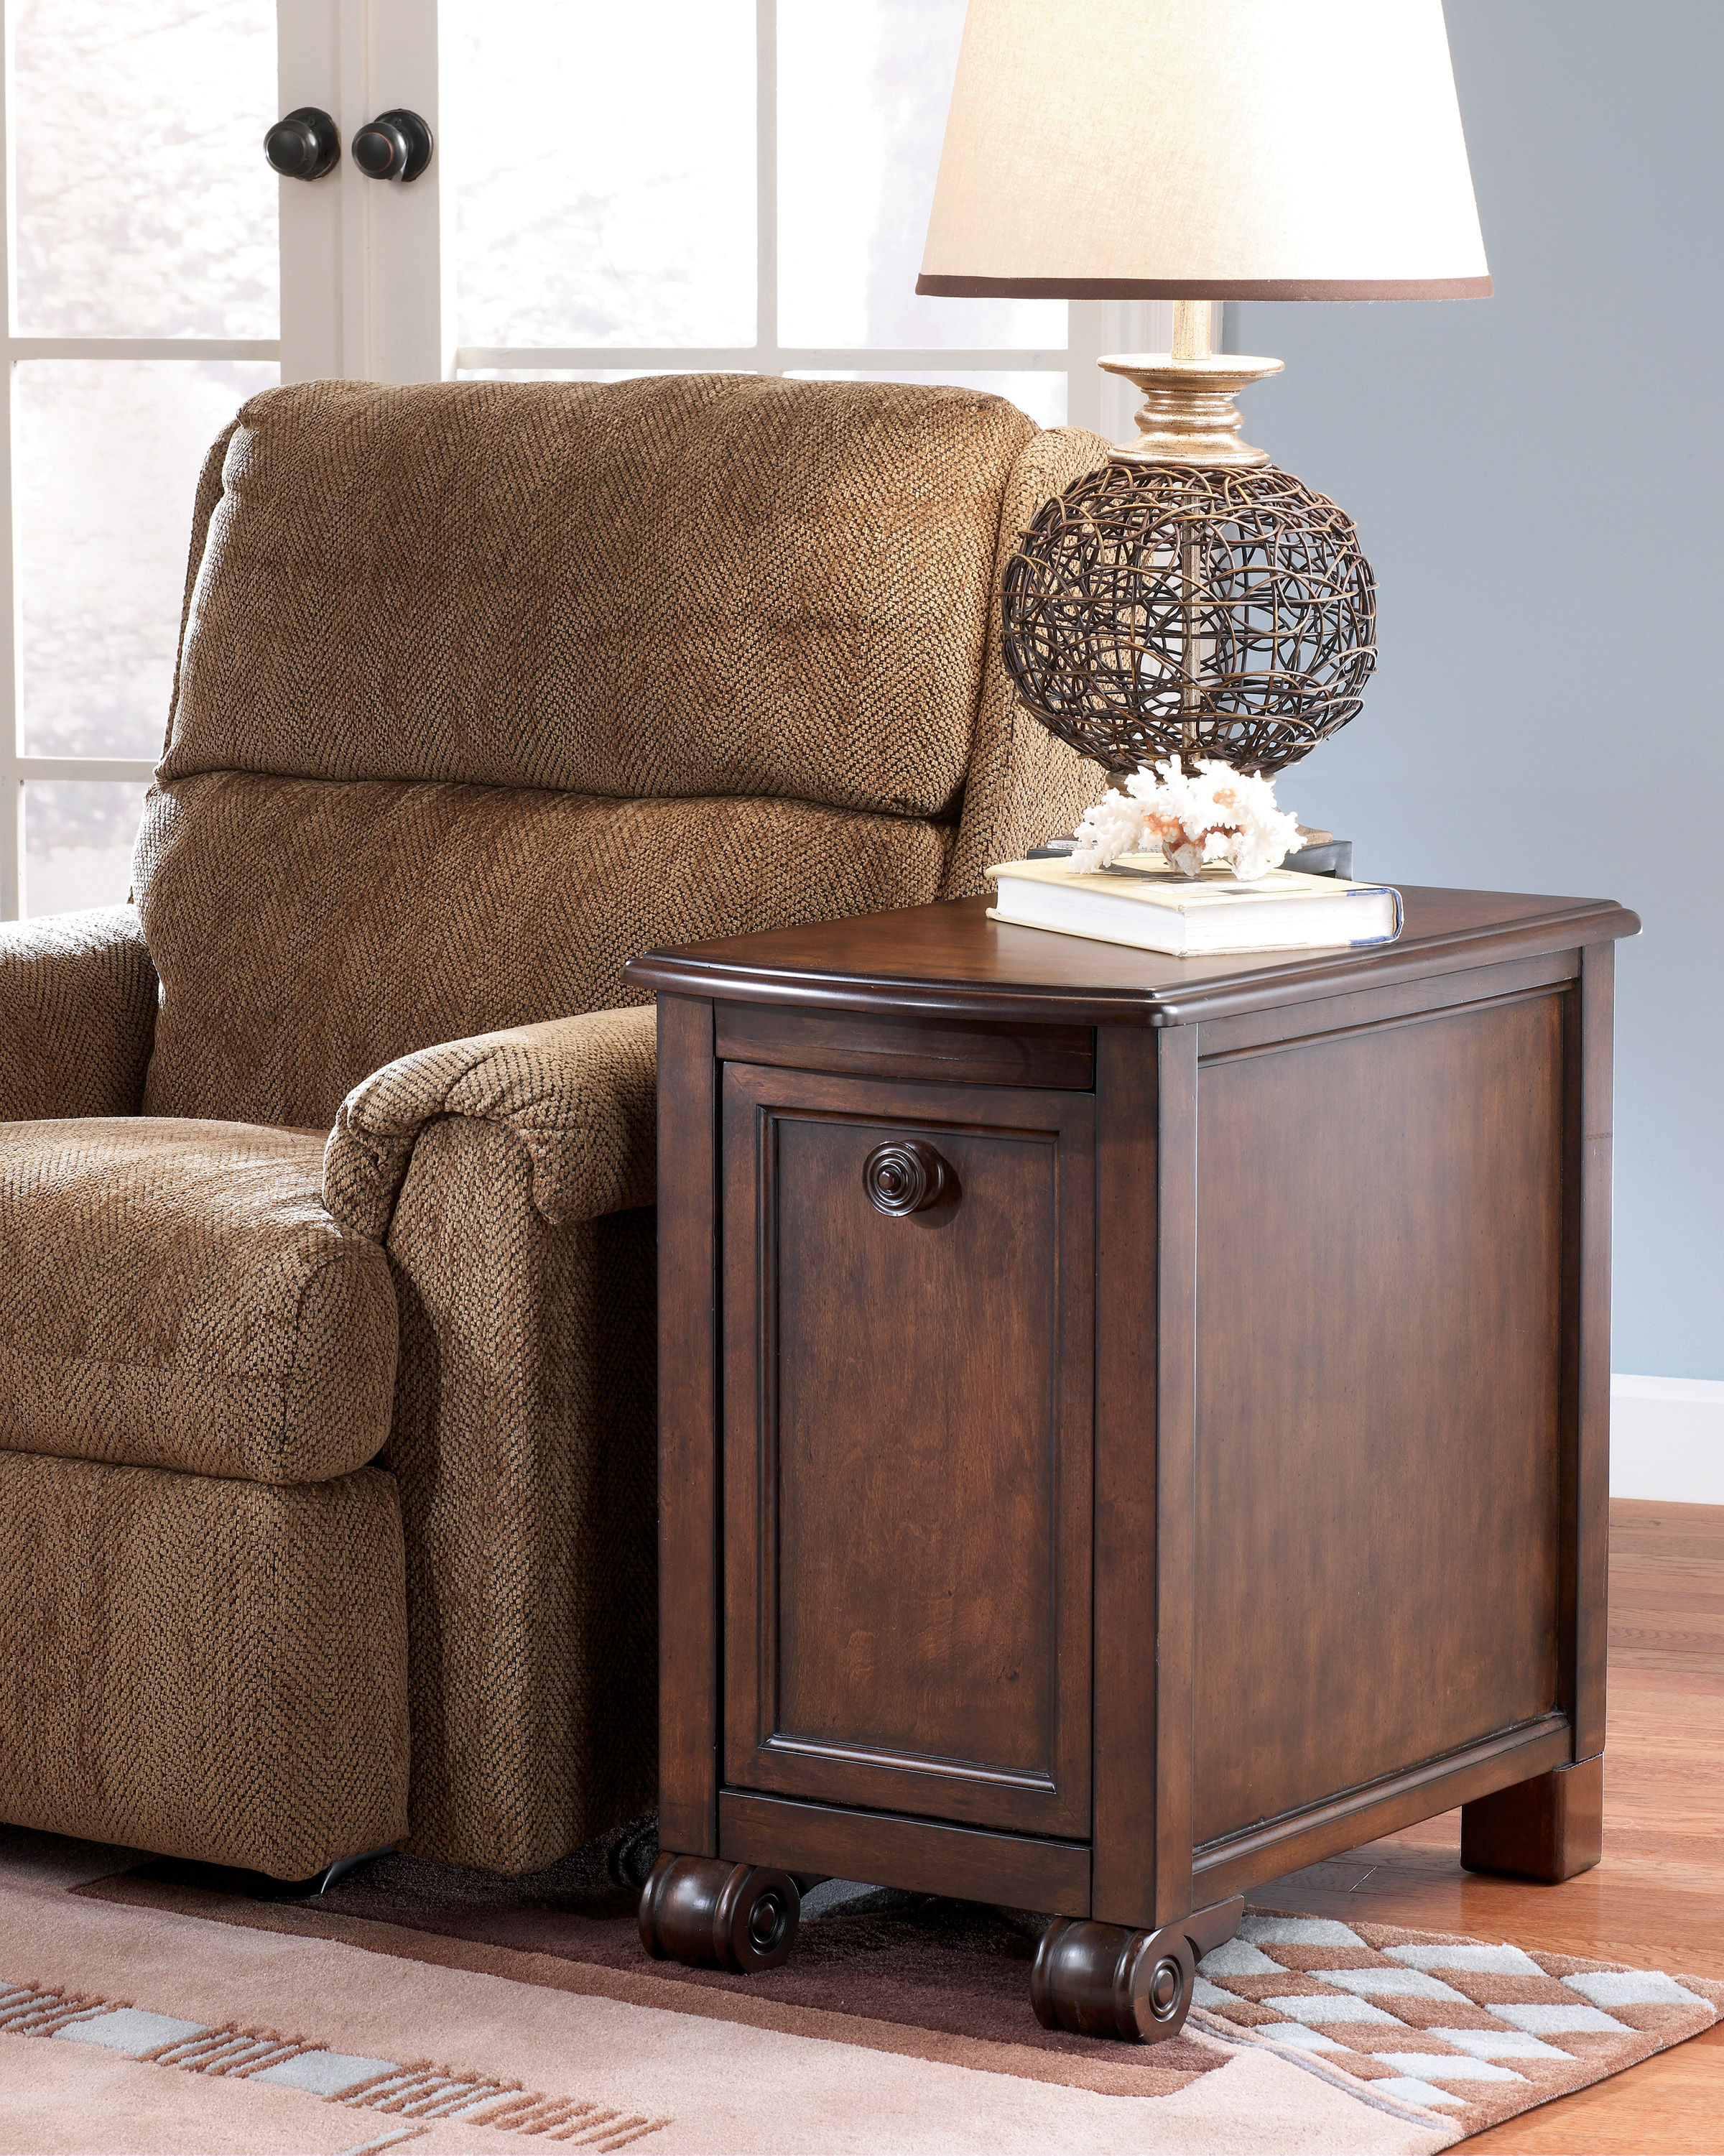 Ashley Furniture Brookfield Chairside Table The Classy Home